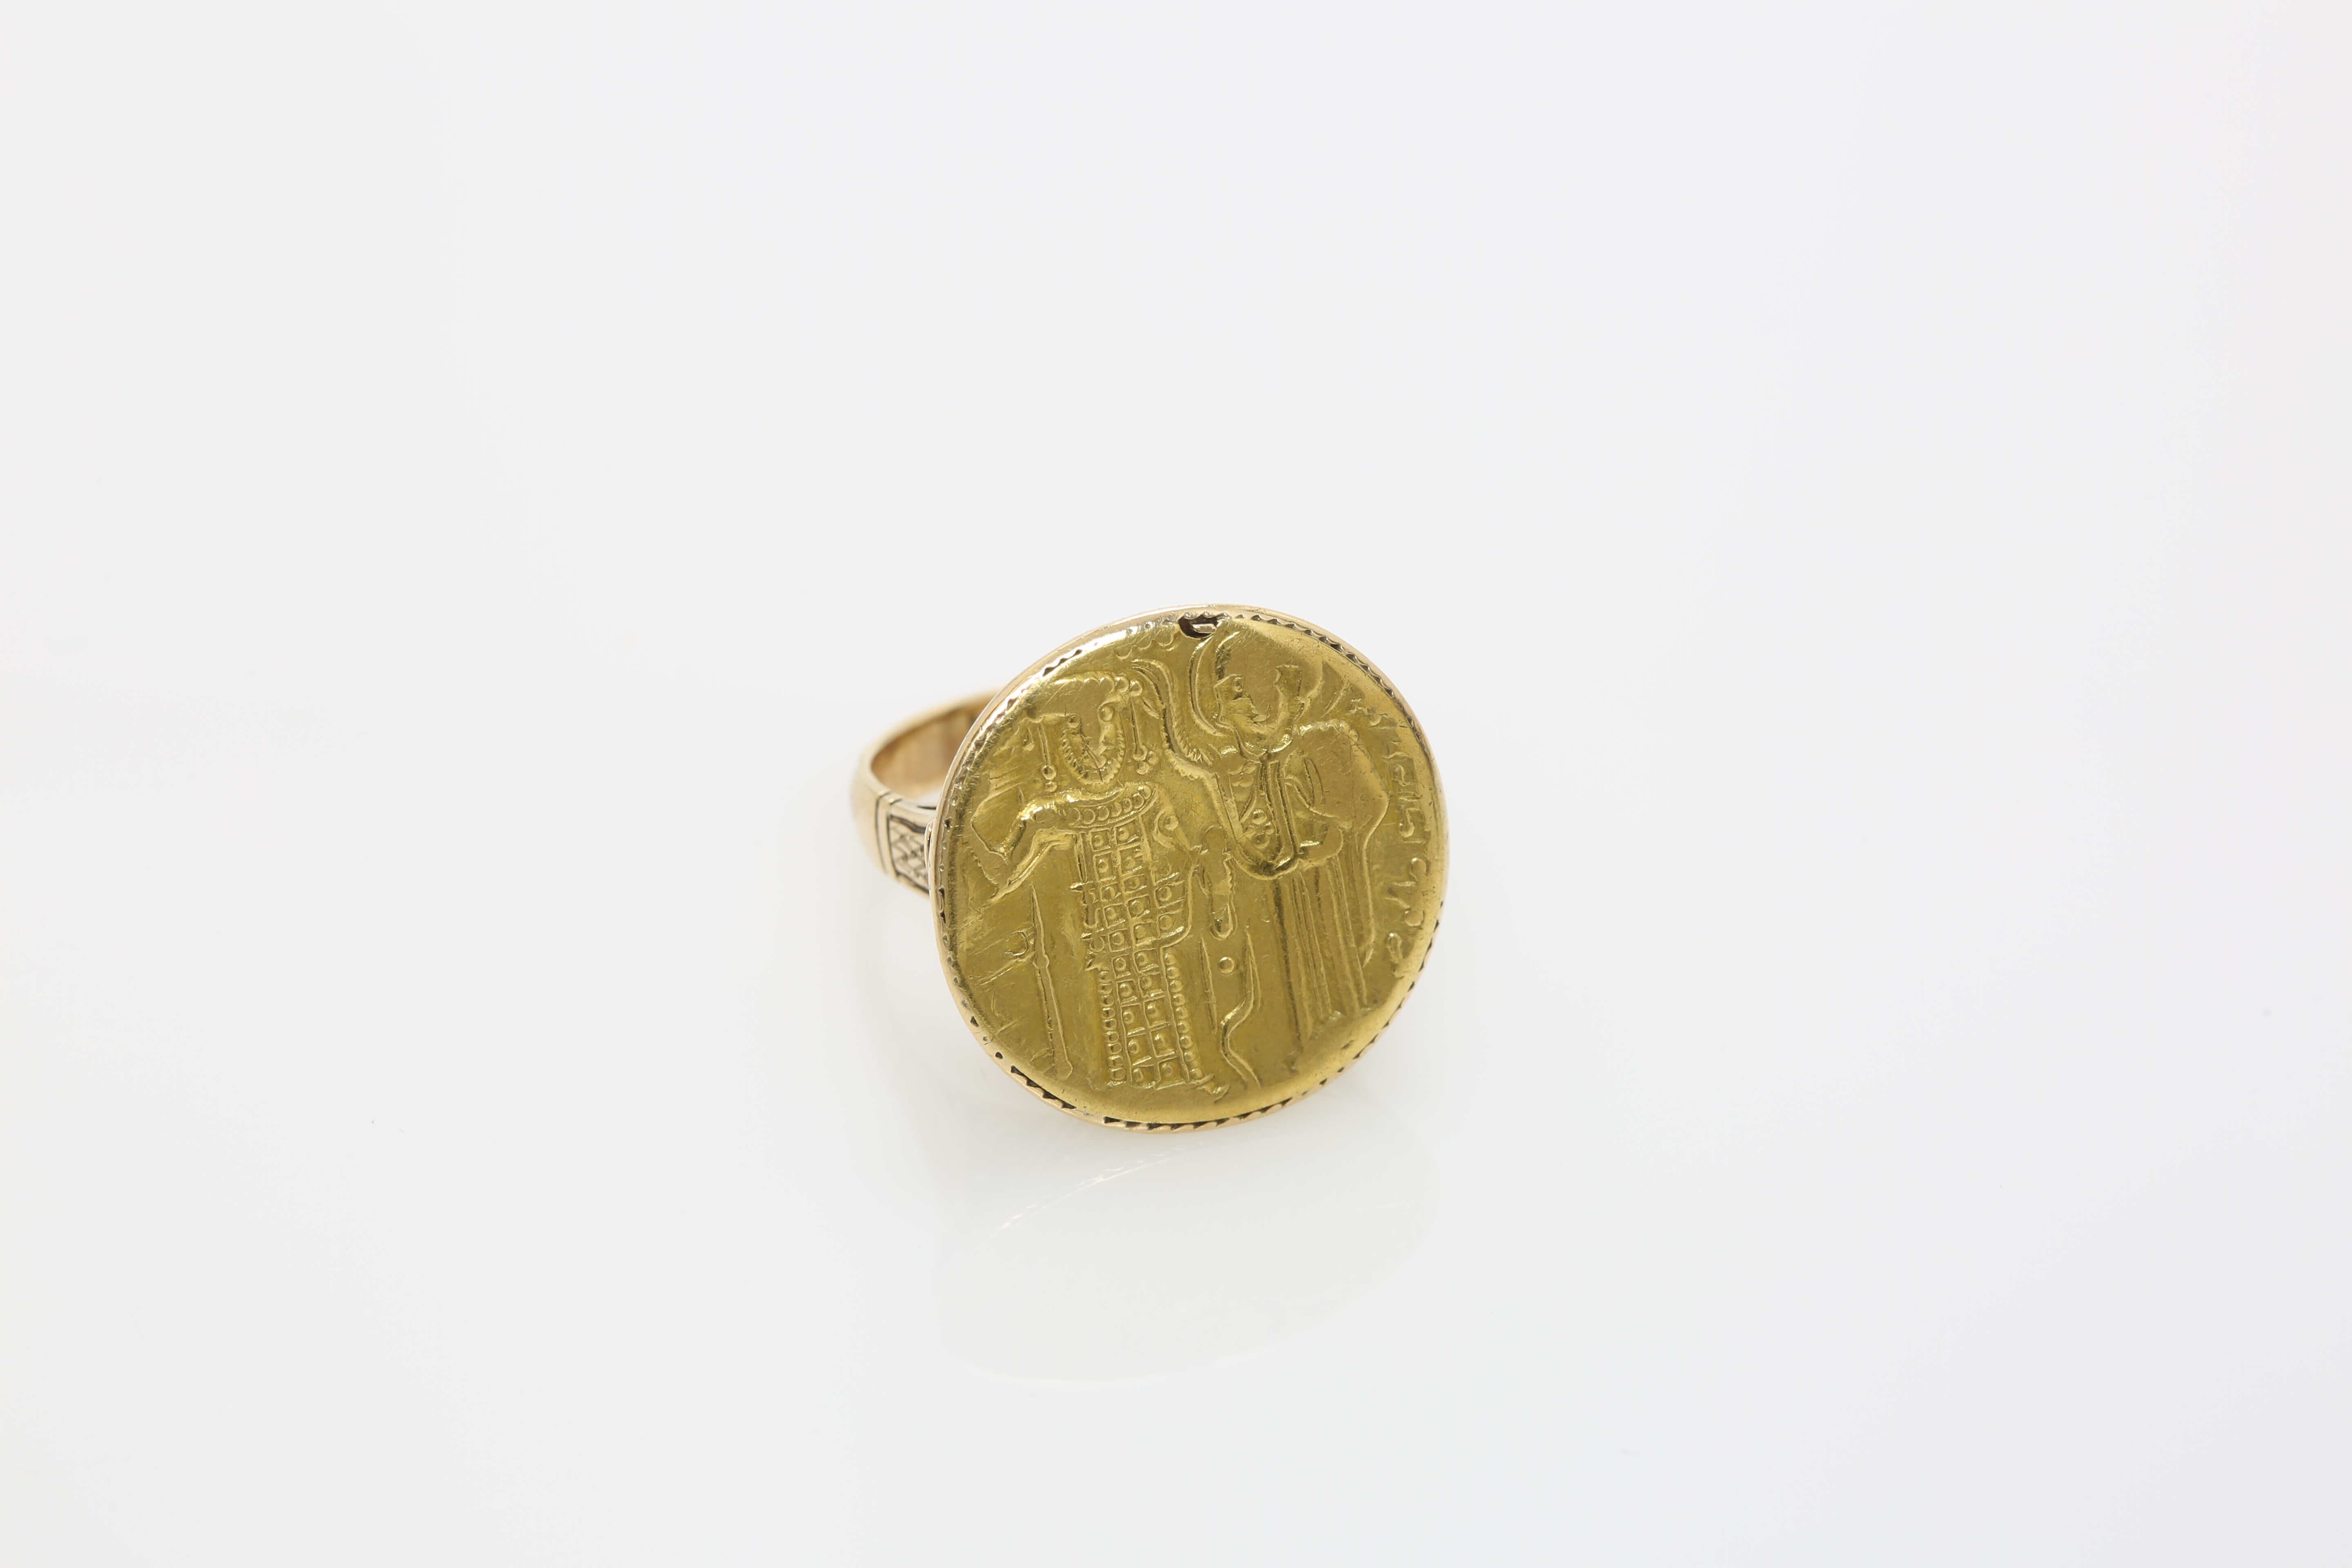 A 19th century Orthodox gold ring, depicting Saint Constantine and Helen. Approx: 8 gr. - Image 2 of 2